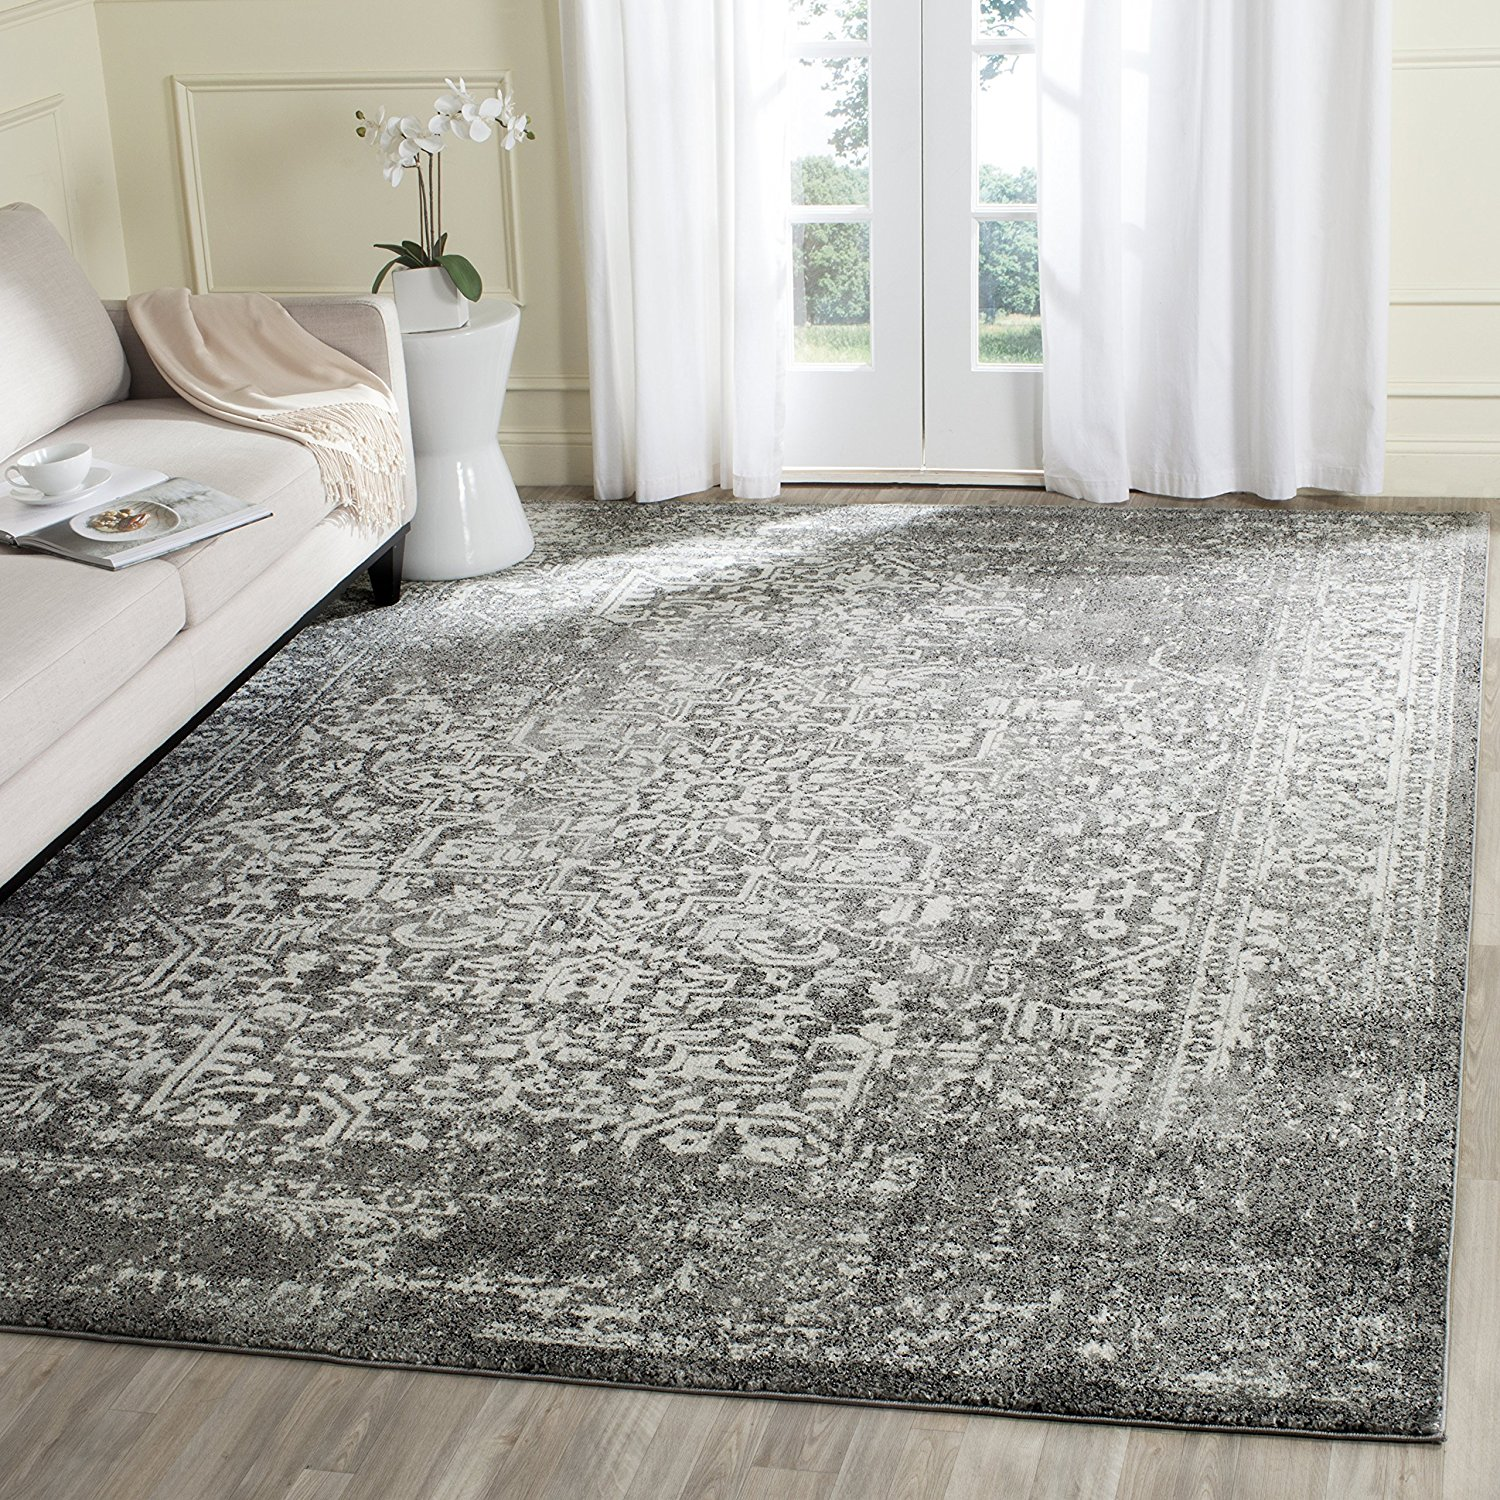 Farmhouse style area rugs under 100 the creek line house for Area carpets and rugs